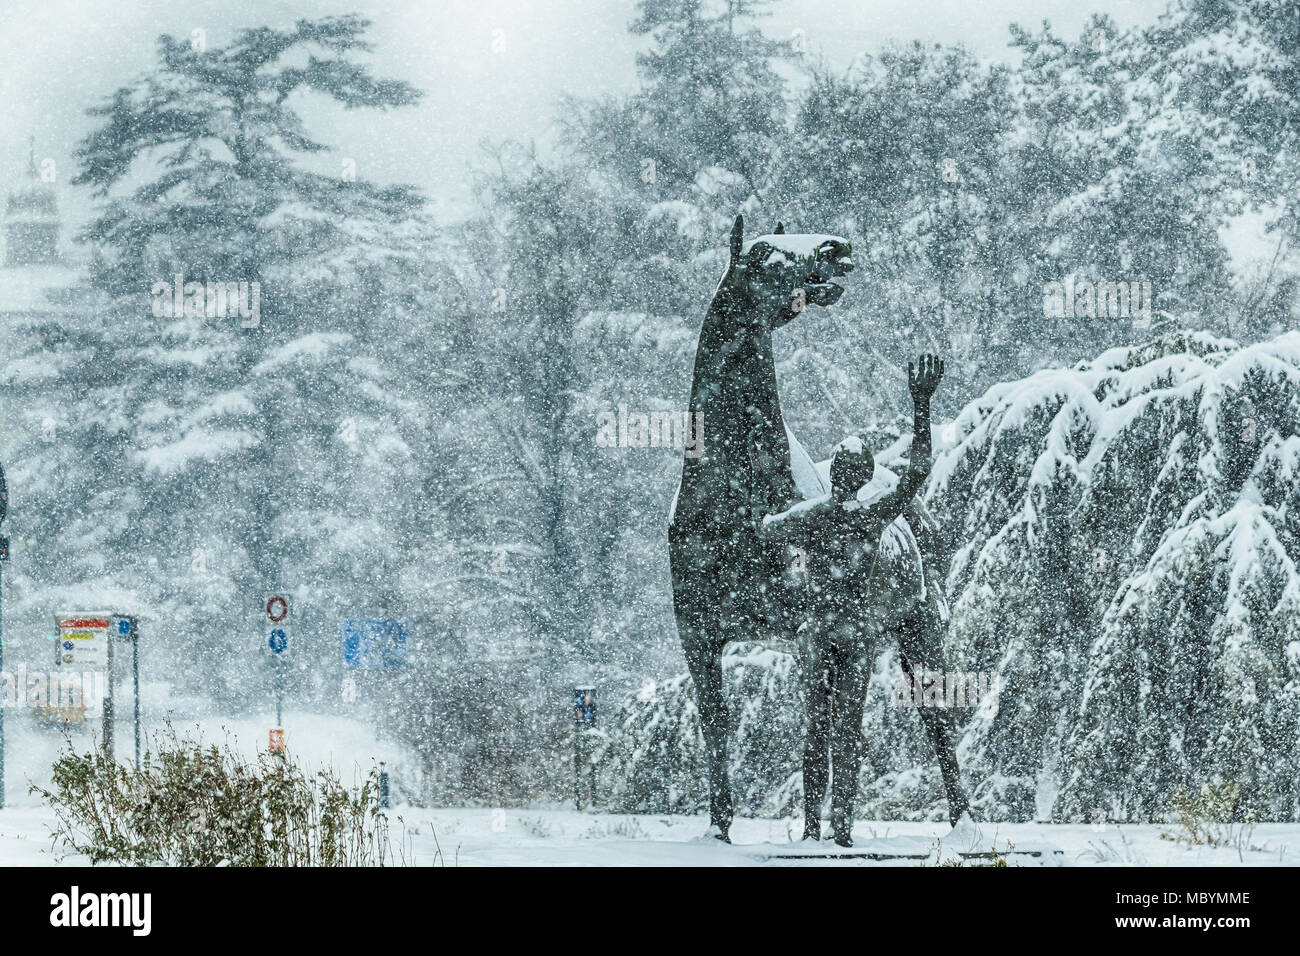 The teenager and the horse is a bronze statue created by sculptor Heinz Schwarz,lies on the shores of Lake Leman in Geneva. It's snowing. - Stock Image